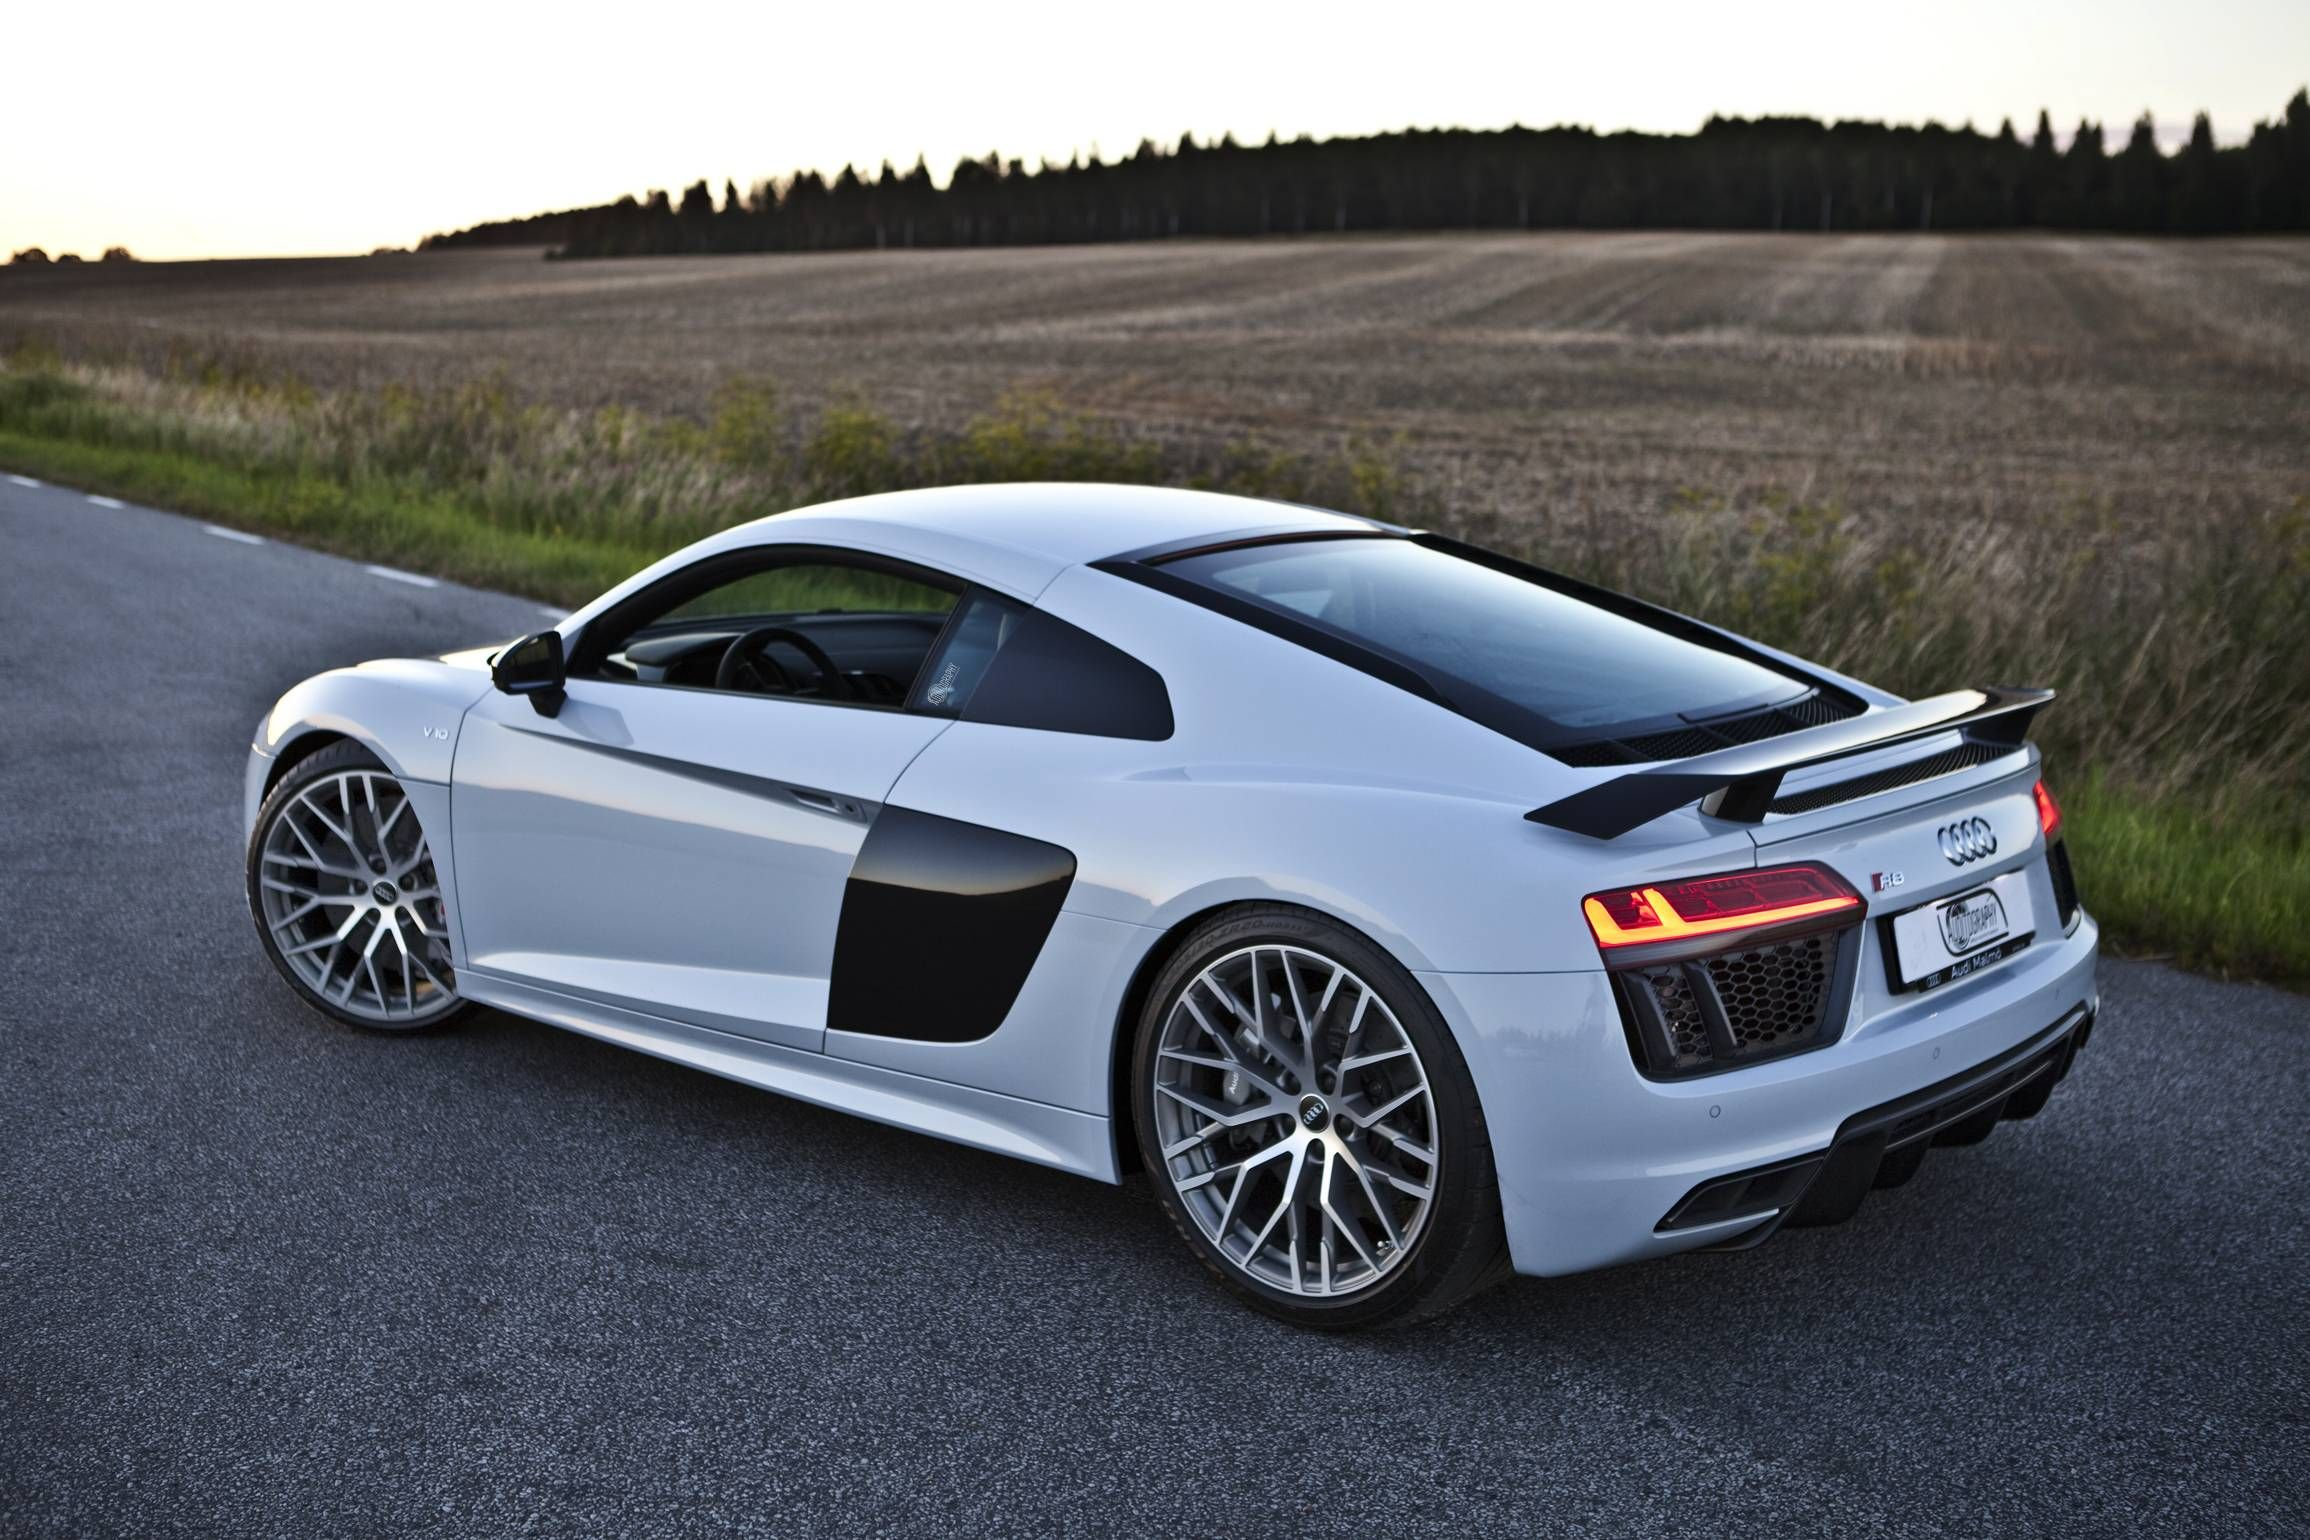 The 25 best audi r8 images ideas on pinterest audi rs8 audi gt and audi vehicles